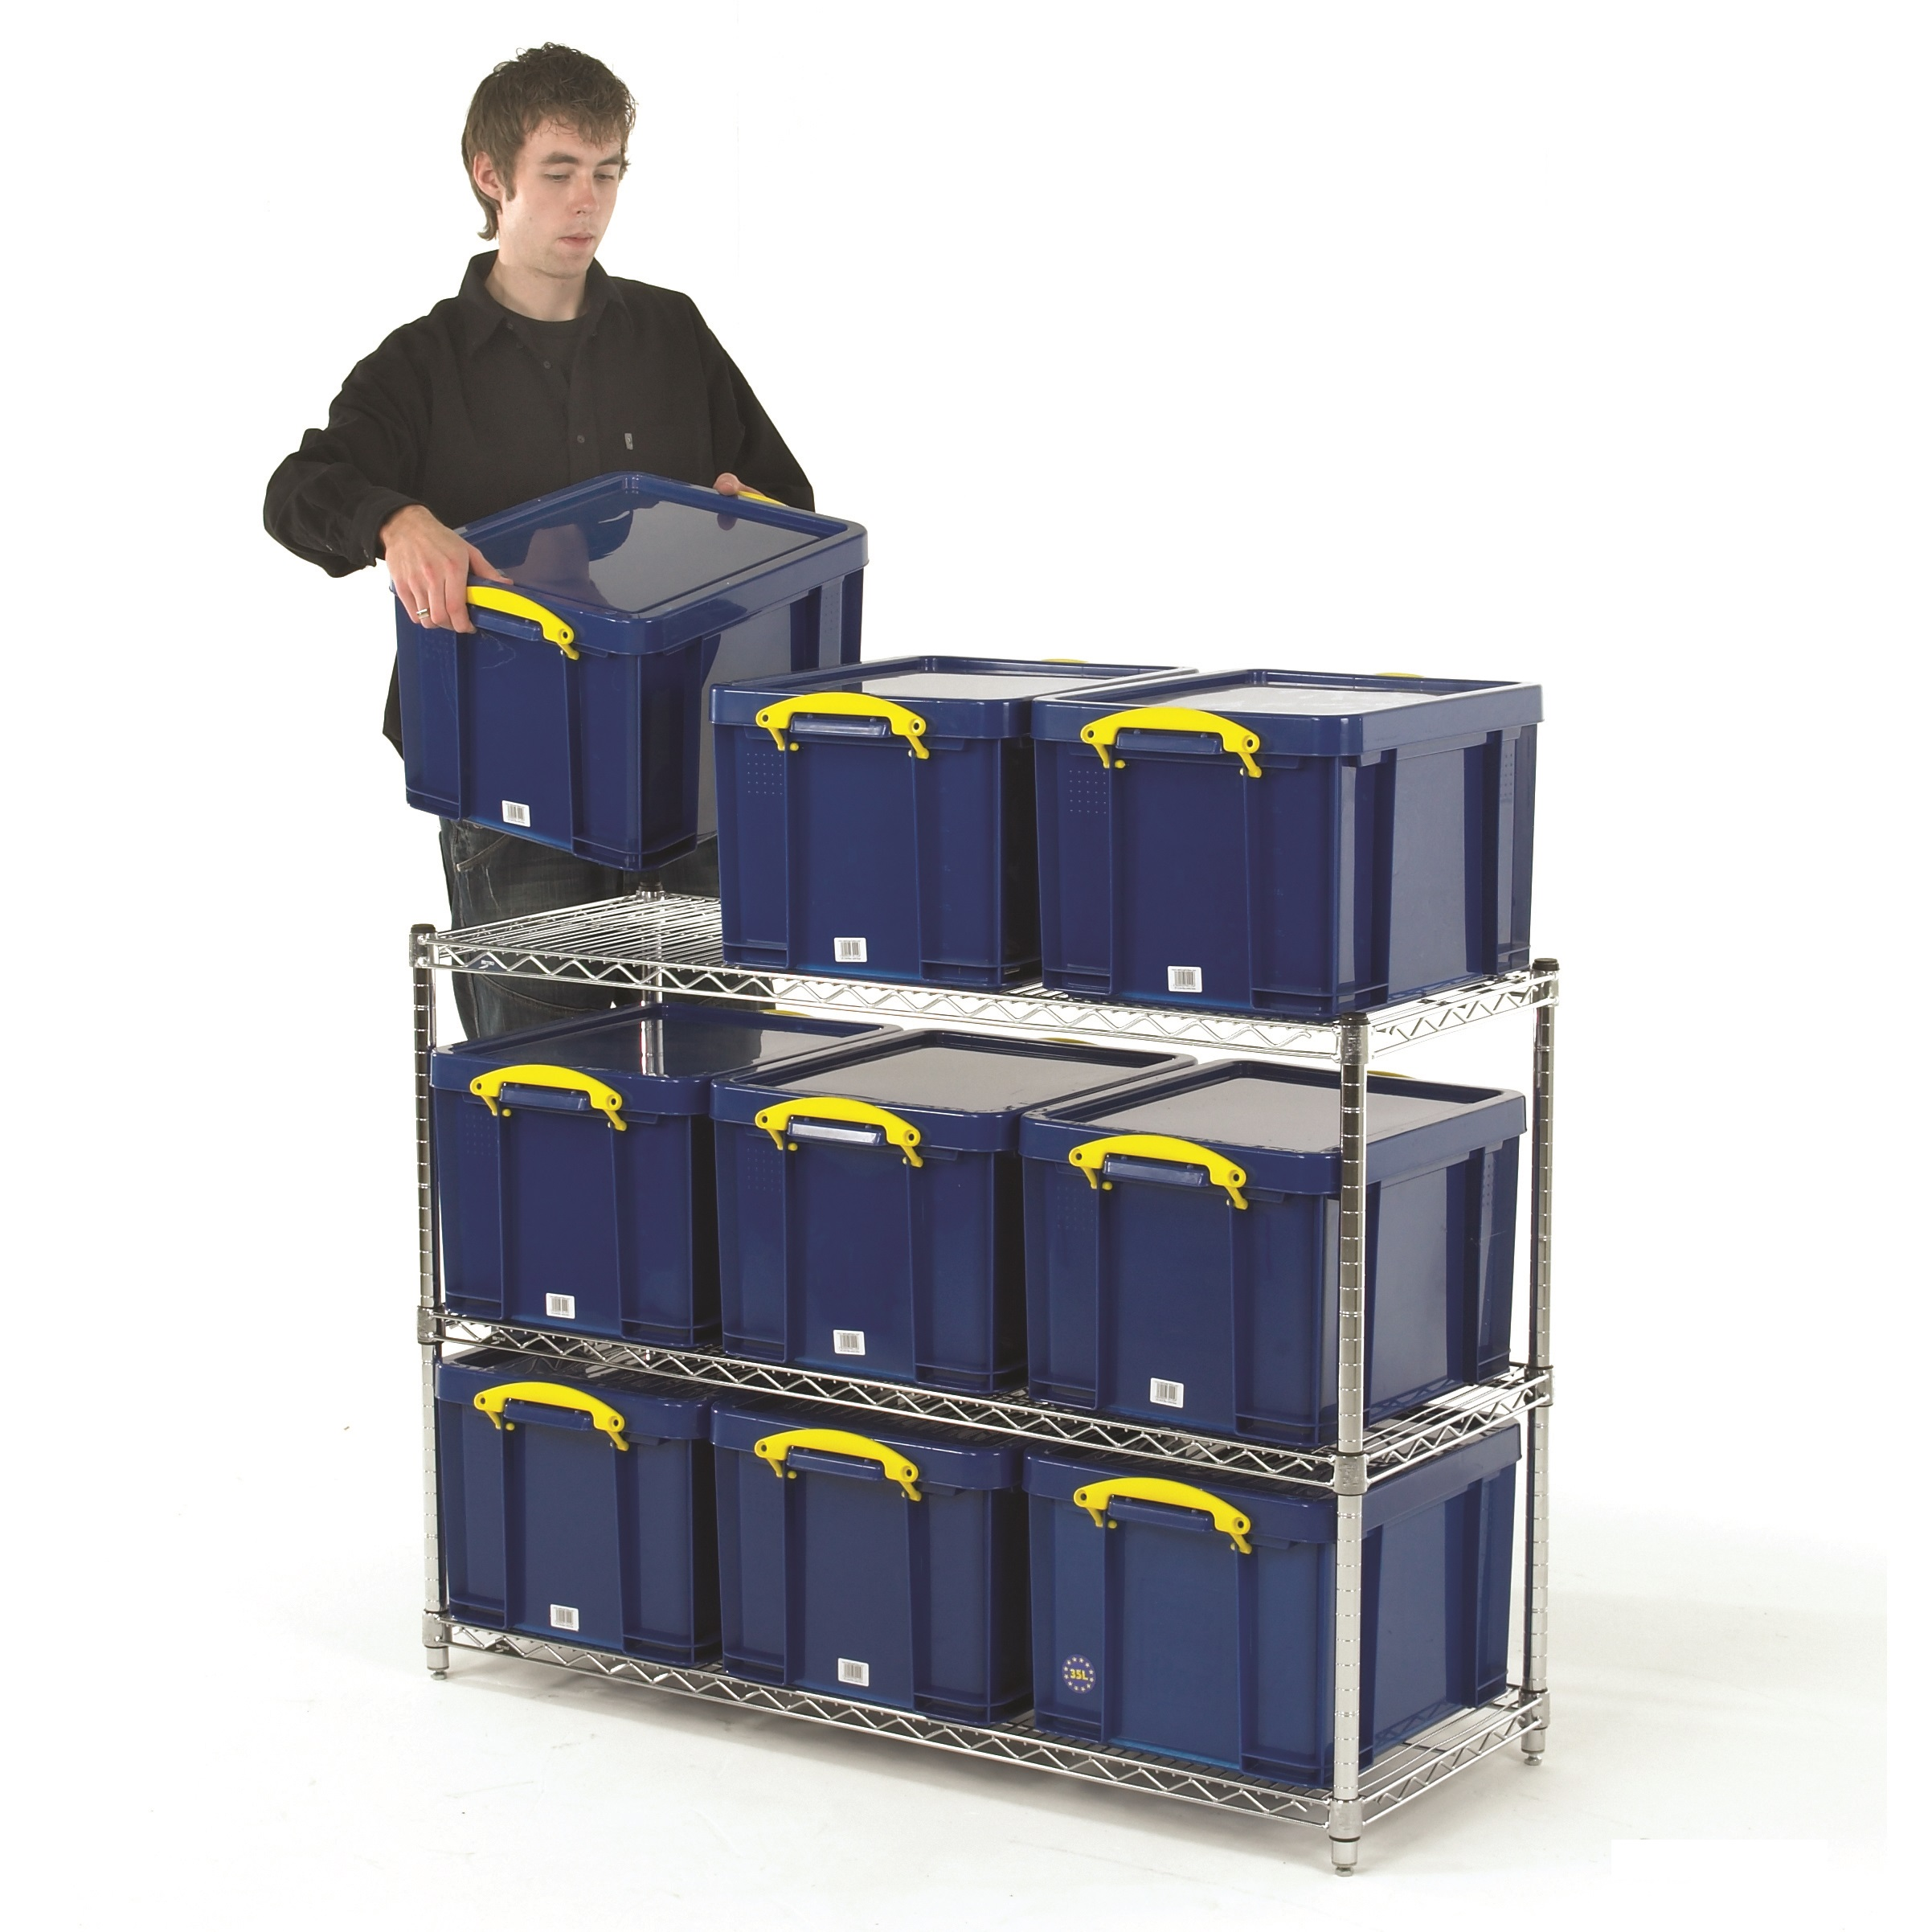 Document Storage Shelving Units with Boxes